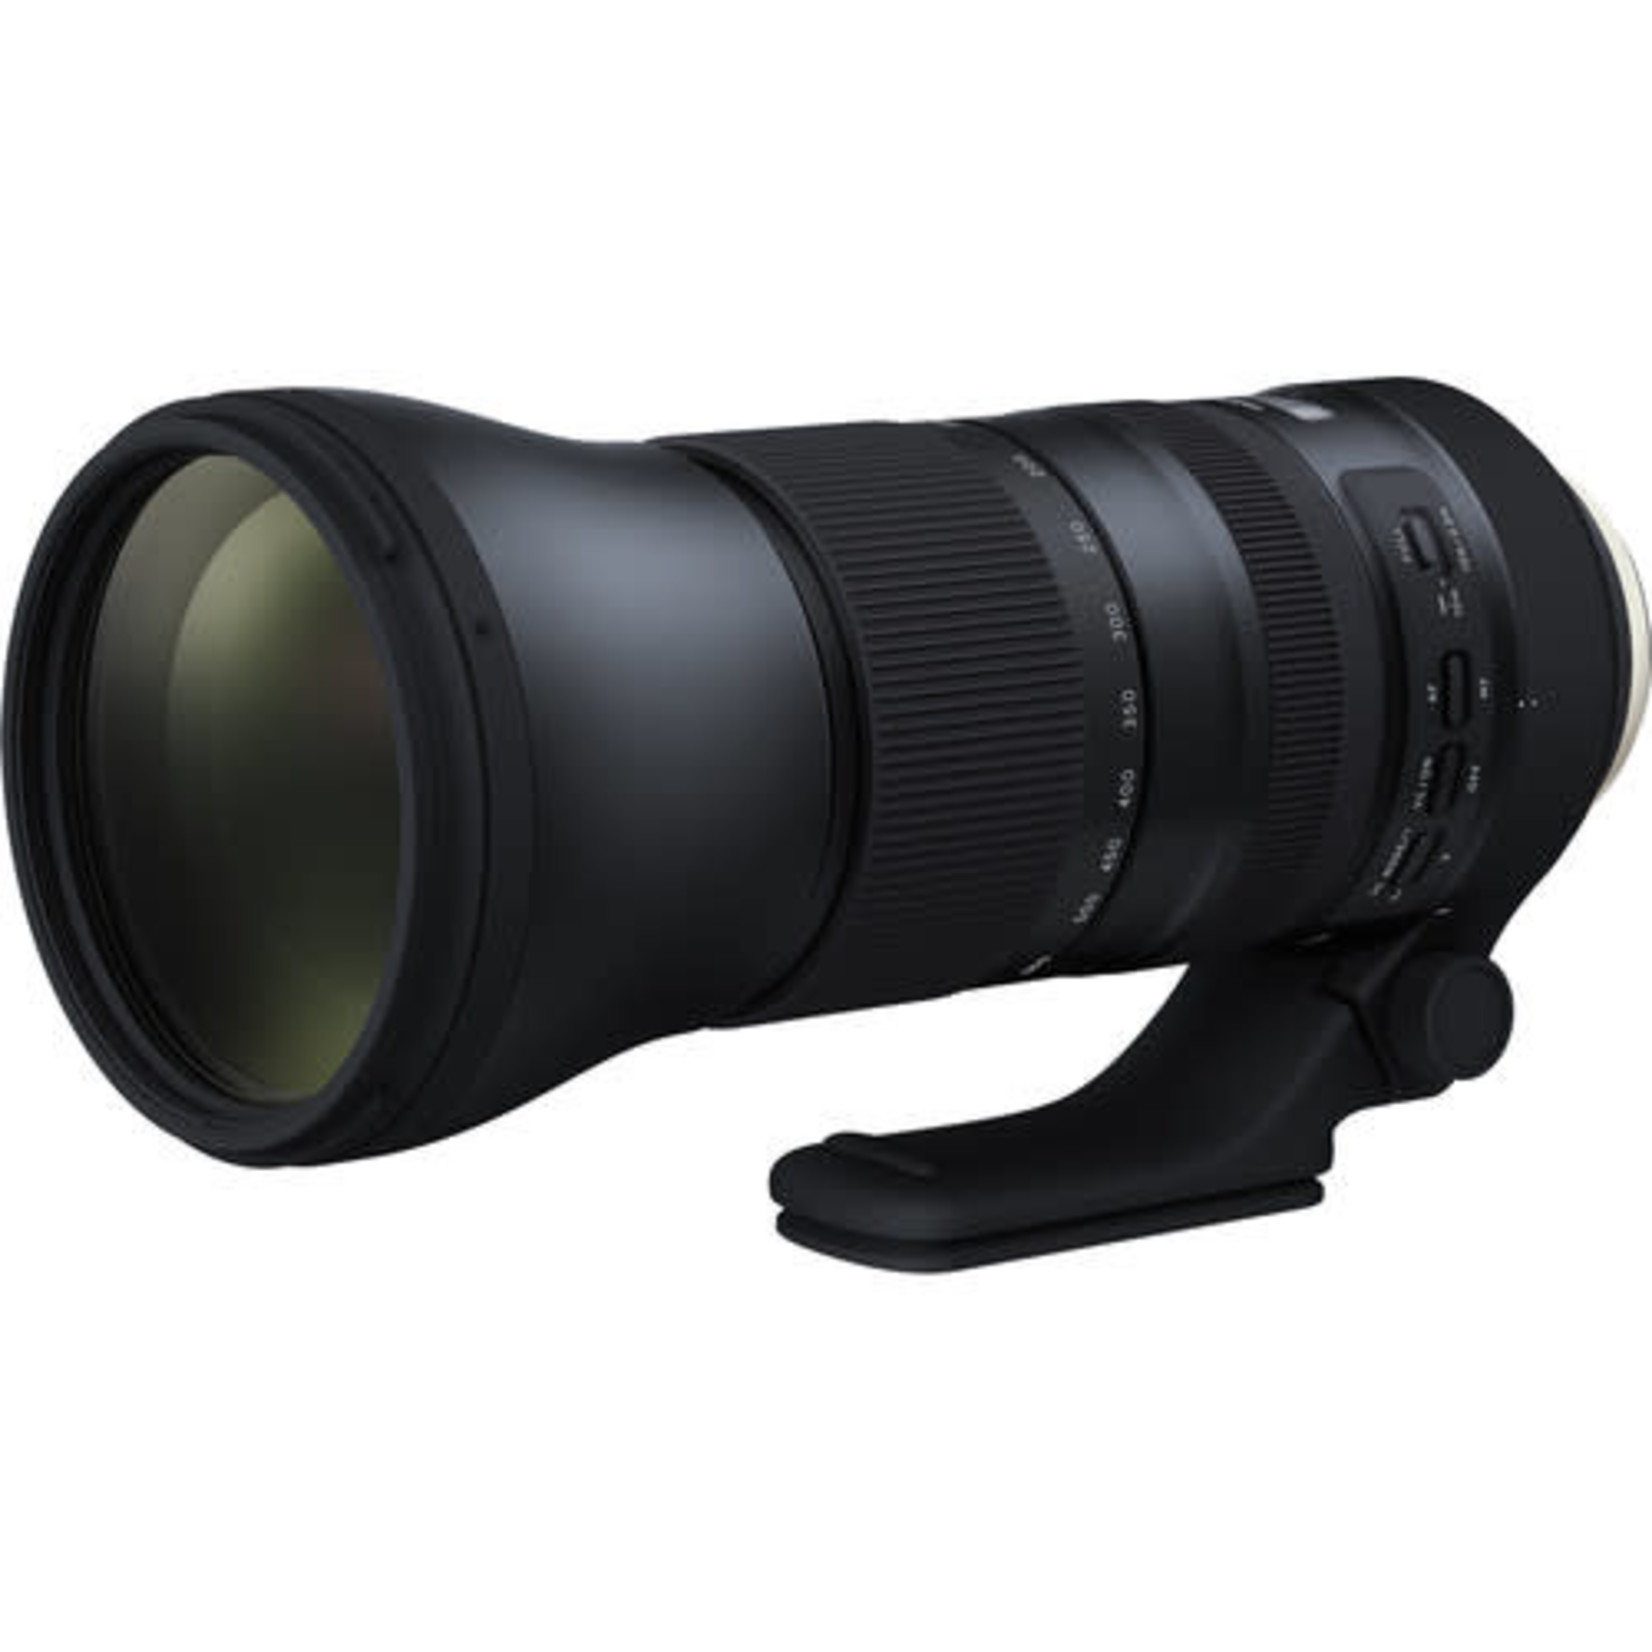 Tamron Tamron SP 150-600mm f/5-6.3 Di VC USD G2 for Canon EF